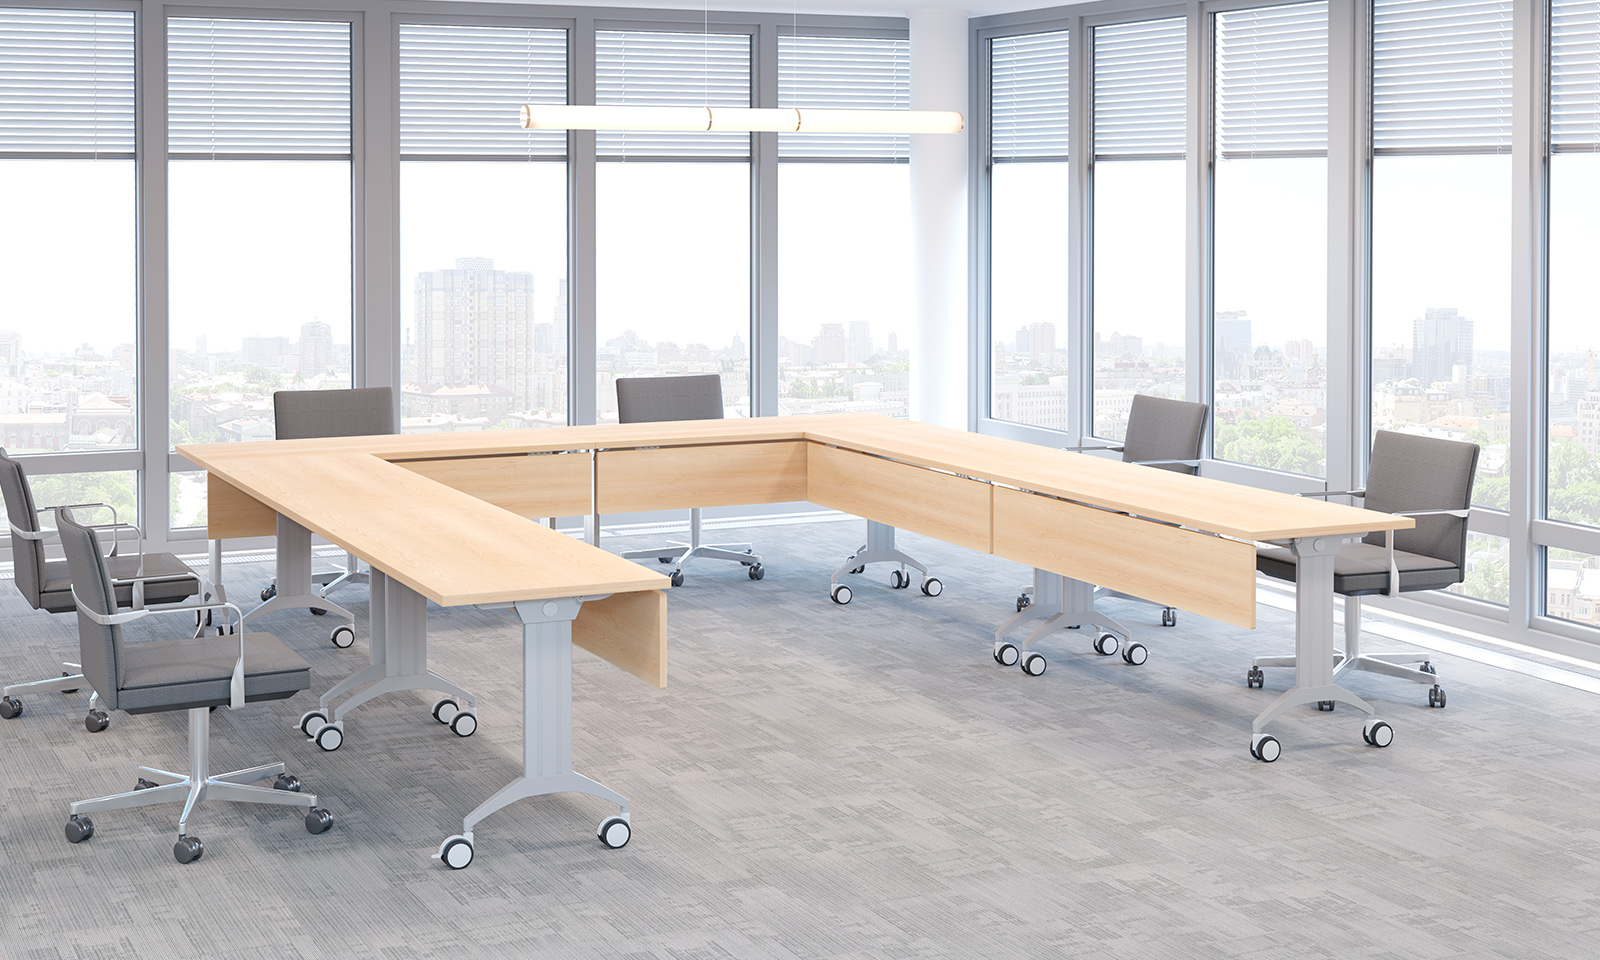 SpecialT Affordable Tables For Office Furniture Industry Tables - Conference table shapes